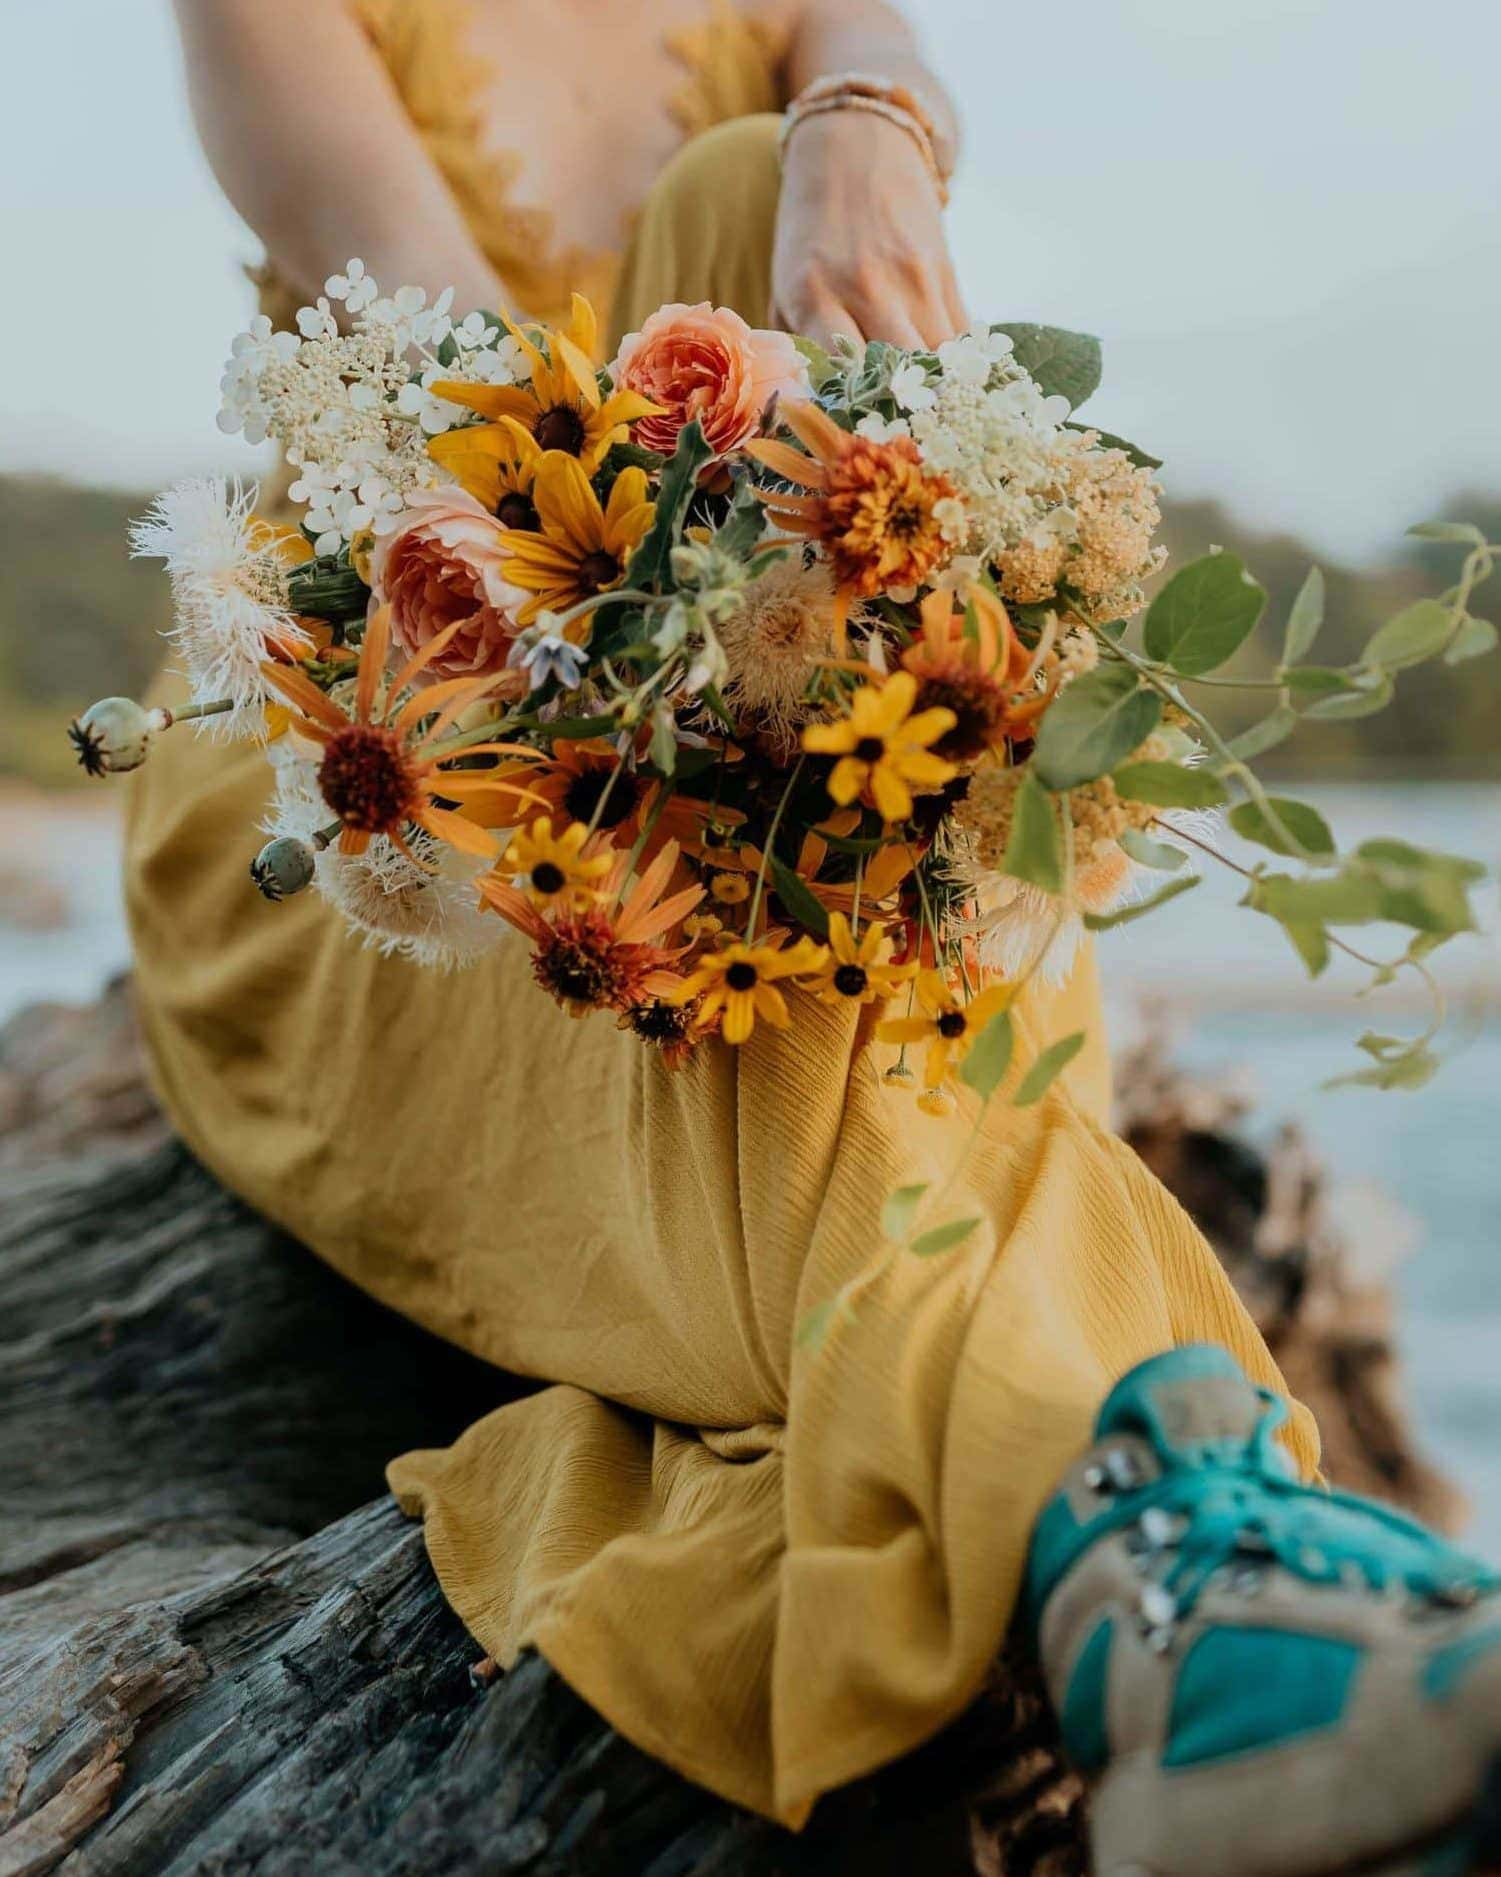 A bride in a yellow dress and vintage hiking boots shows off her bouquet.Photographed by virginia elopement photographer, Flit Photography.